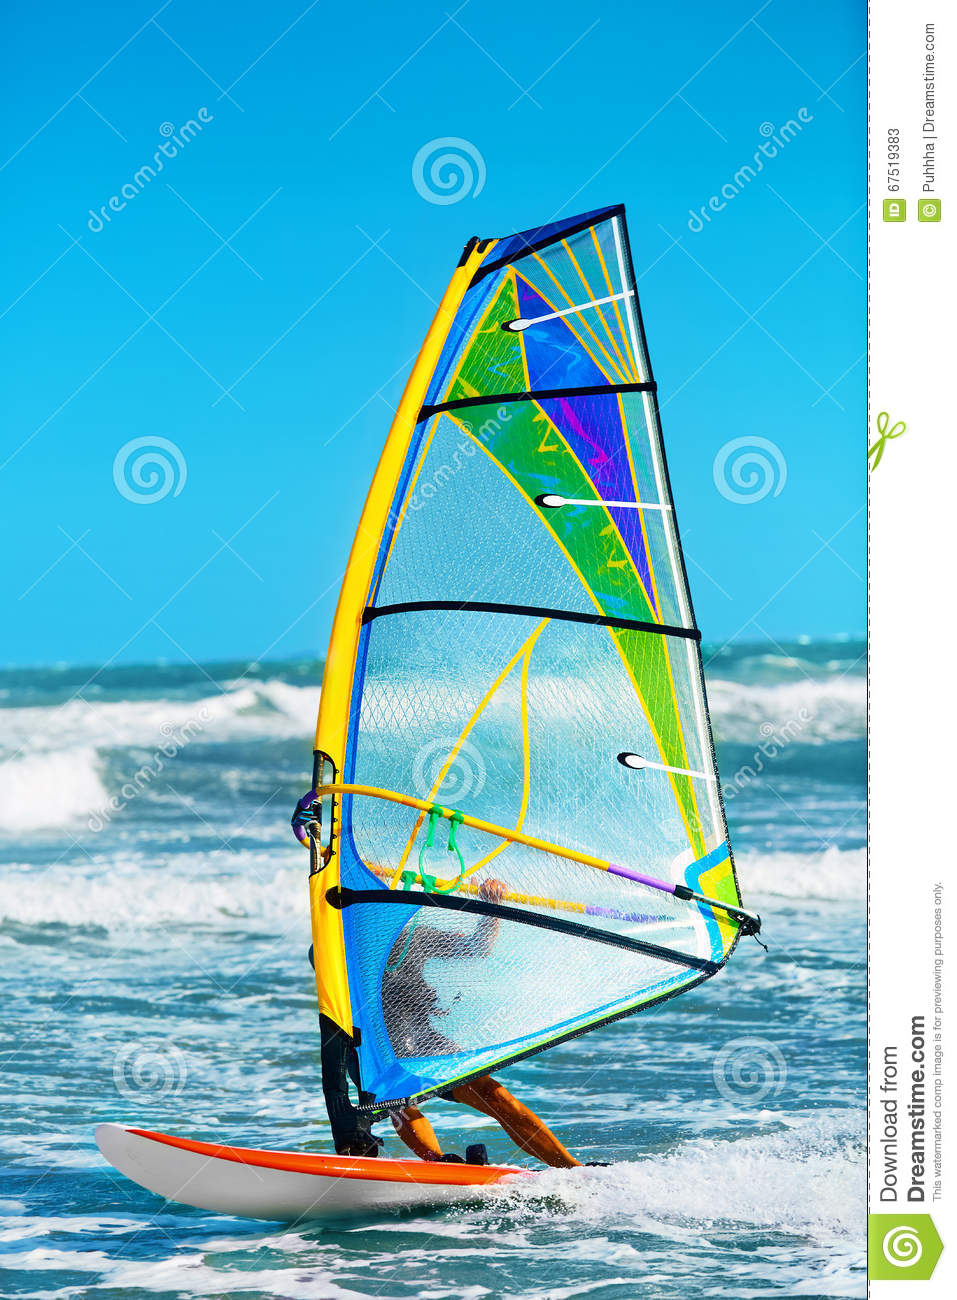 Recreational Extreme Water Sports. Windsurfing. Surfing Wind Act